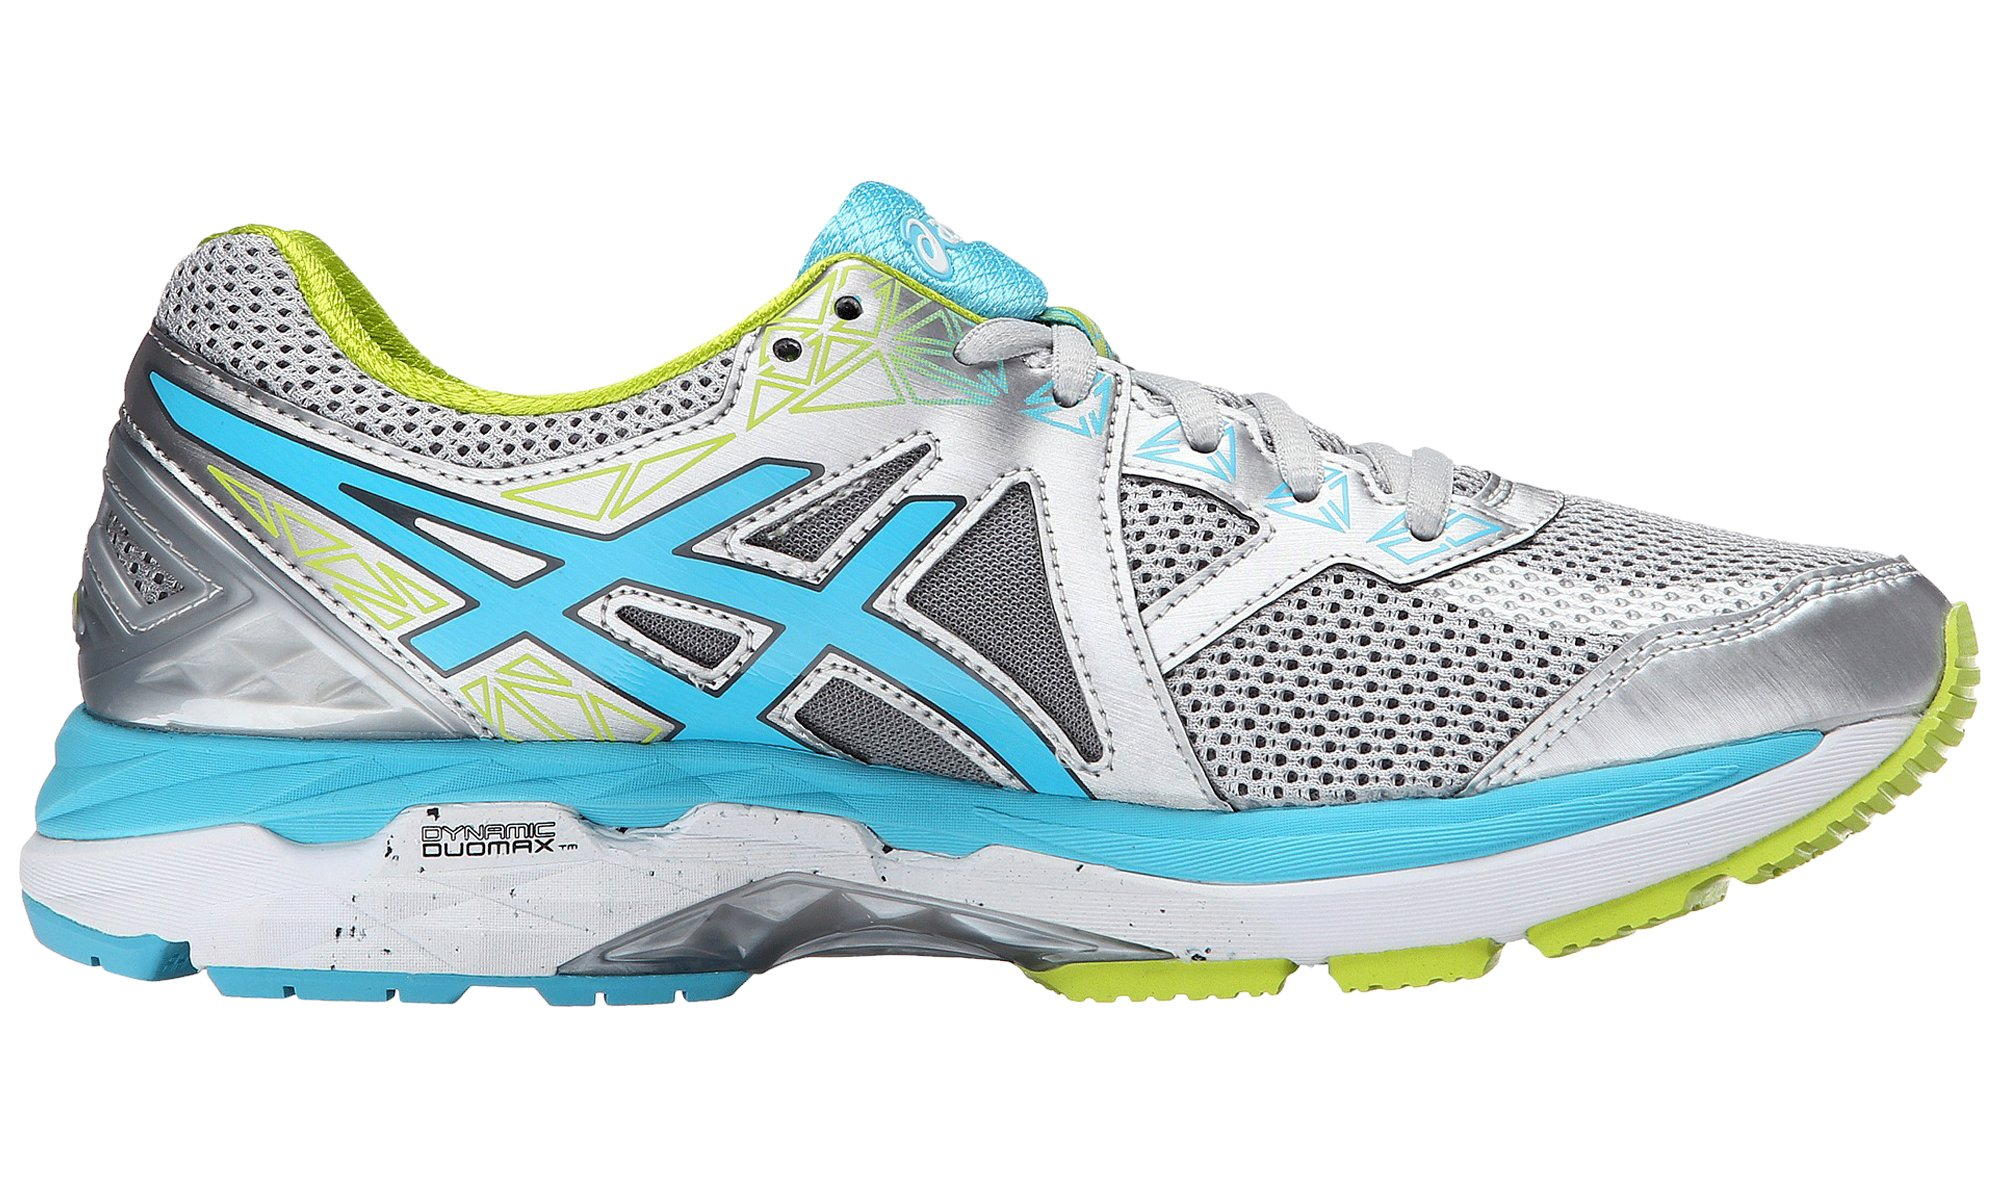 Us 2000 5 Gt D Women's Punch11 4 Running Asics ShoeSilverturquoiselime DH2IWE9Y